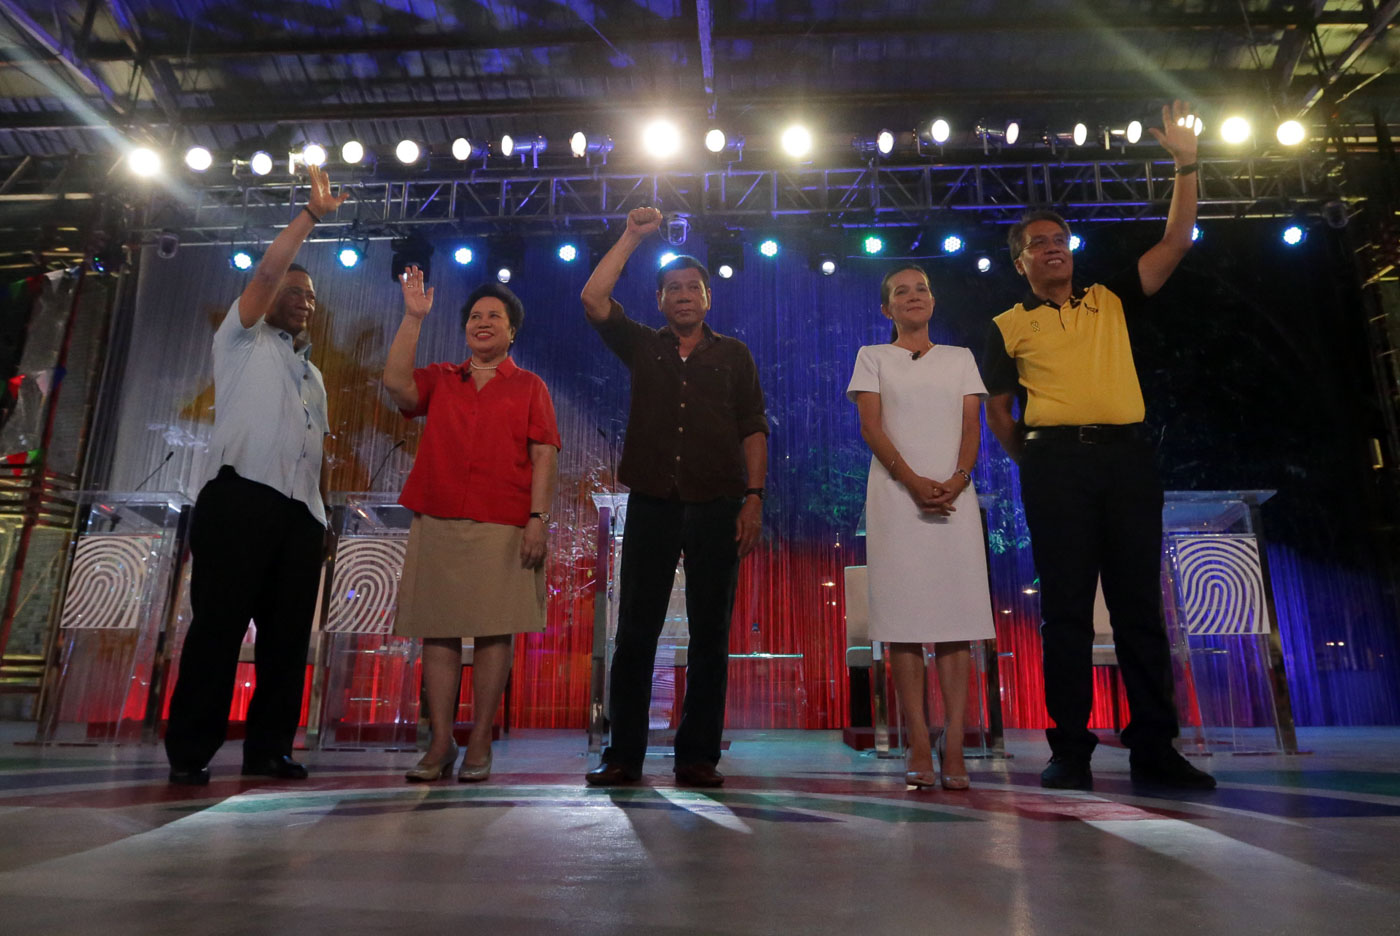 LAST DEBATE. Presidential candidates face off anew in the final leg of the Pilipinas Debates 2016 at the PHINMA University of Pangasinan in Dagupan City on April 24, 2016. Photo by Manila Bulletin